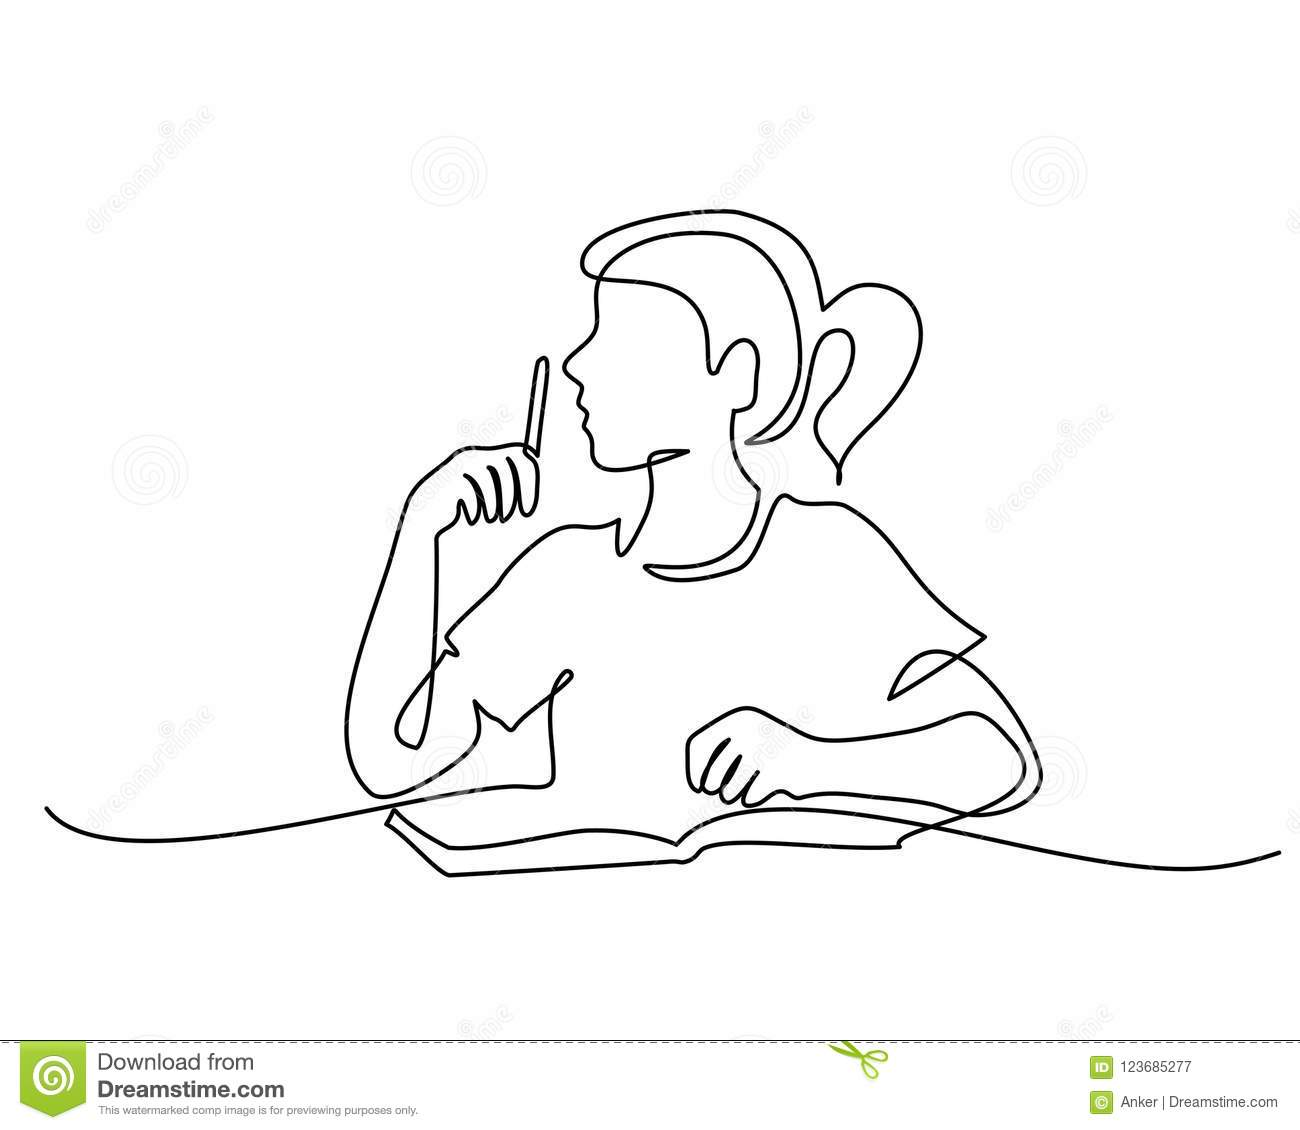 Schoolgirl sitting and writing with pencil on book